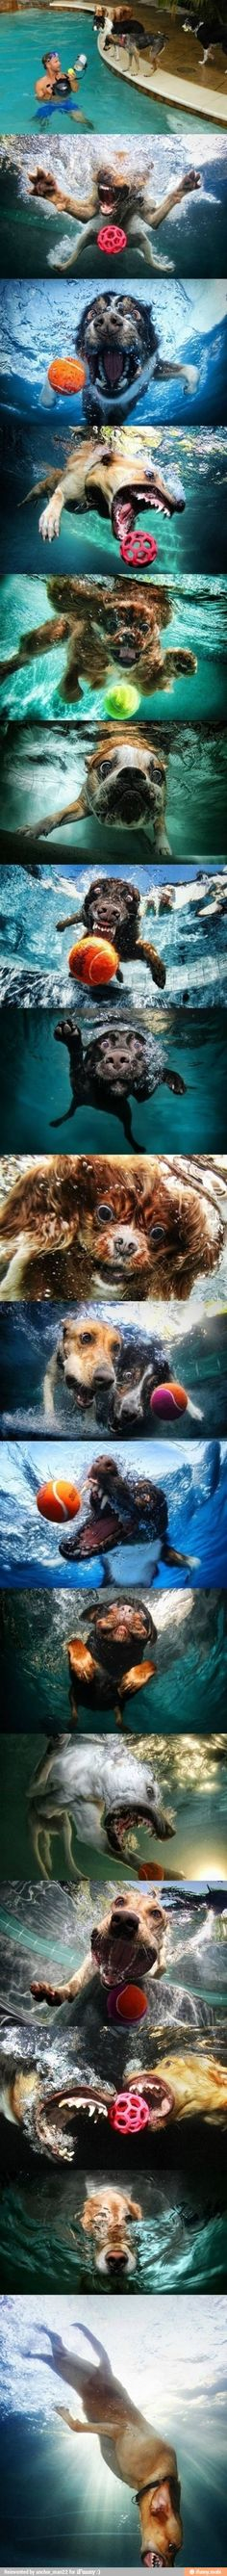 Dogs underwater / iFunny :)